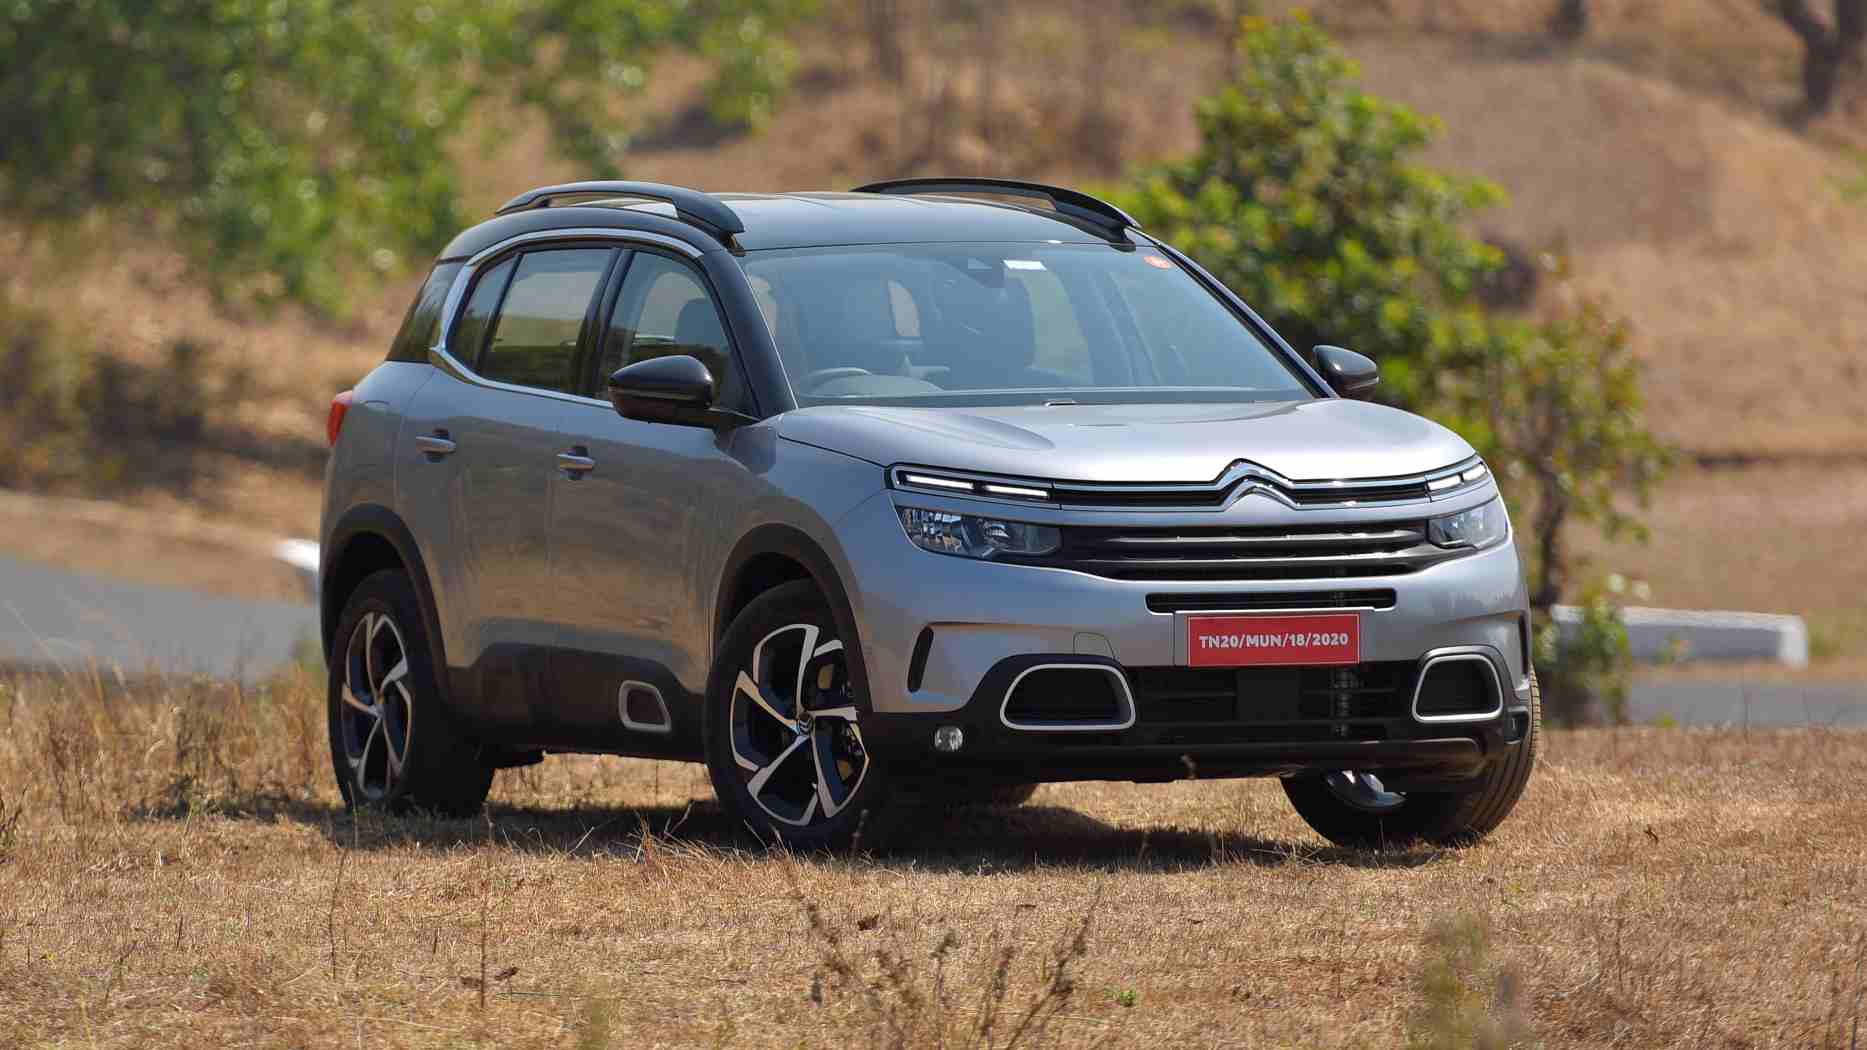 The C5 Aircross has a distinct personality of its own, which shines through in its design. Image: Overdrive/Anis Shaikh